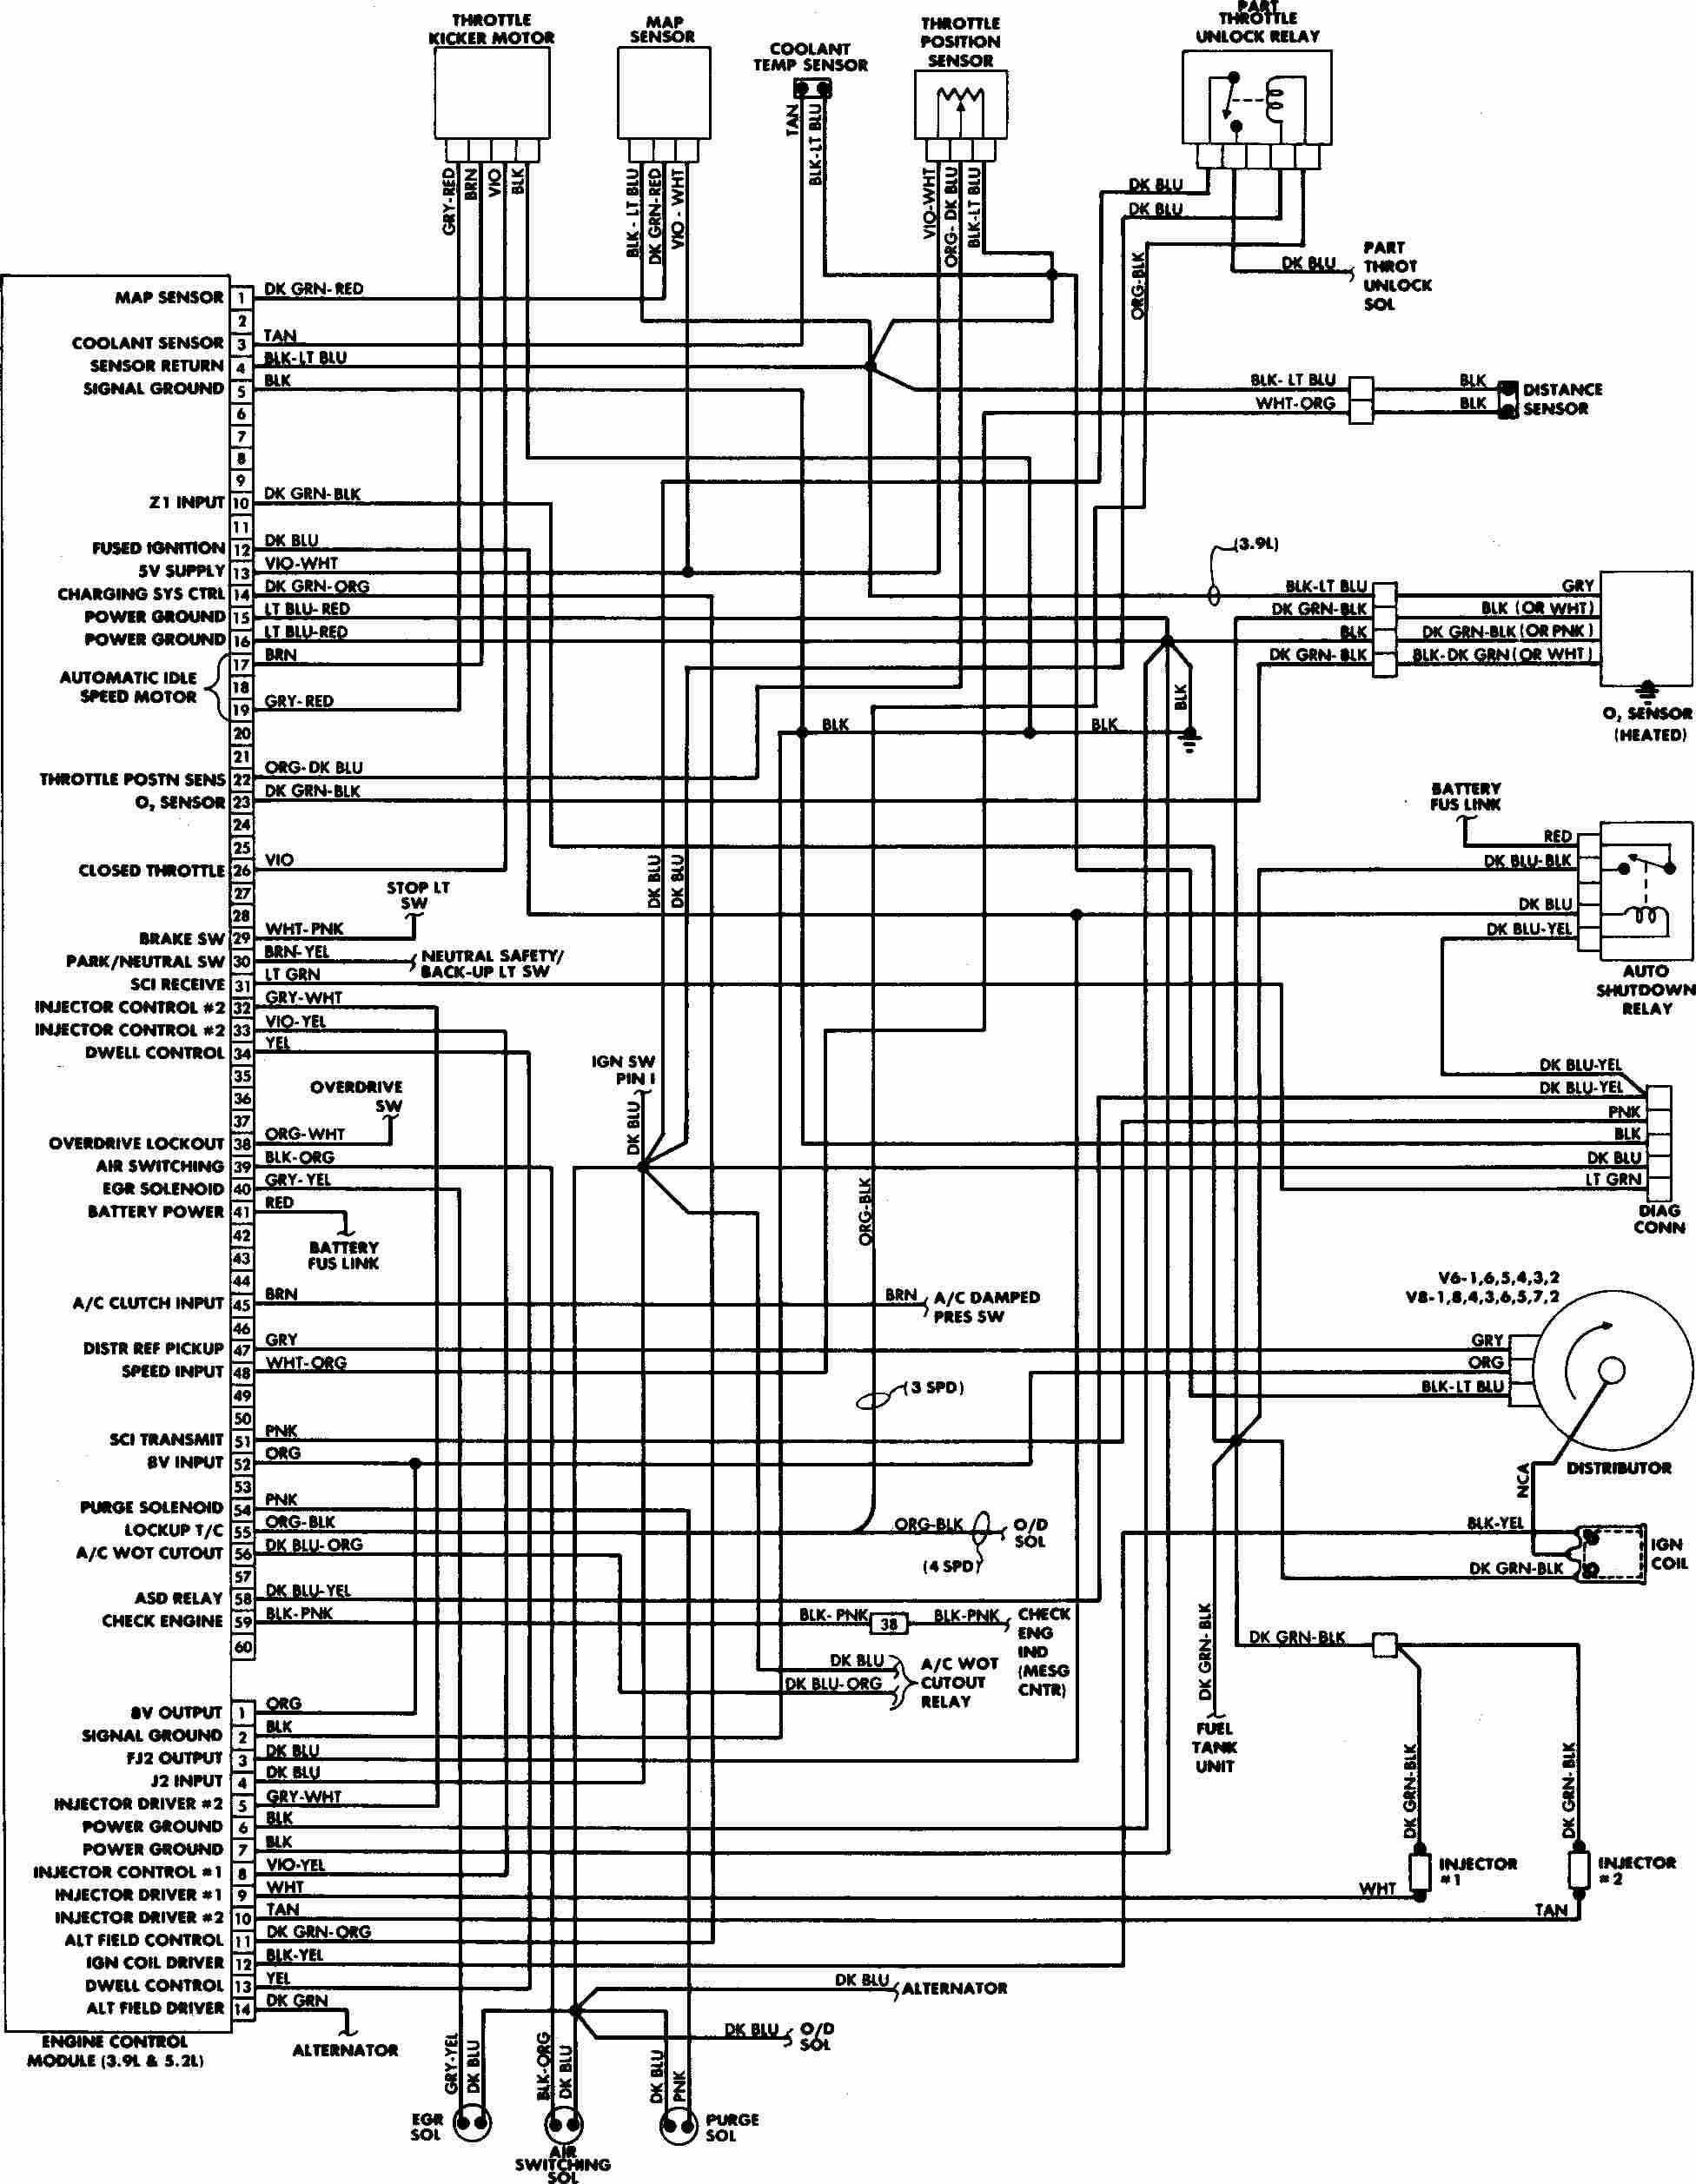 98 Dodge Neon Wiring Schematic | Wiring Diagram on dodge d100 wiring diagram, dodge viper wiring diagram, dodge challenger engine diagram, dodge dakota wiring diagram, chrysler dodge wiring diagram, dodge magnum wiring diagram, dodge omni wiring diagram, dodge challenger outline drawing, dodge d150 wiring diagram, dodge challenger rear bumper removal, 1955 dodge wiring diagram, dodge challenger speaker, dodge challenger amp location, dodge 3500 wiring diagram, dodge w150 wiring diagram, dodge challenger fuel tank, dodge challenger air cleaner, dodge m37 wiring diagram, dodge durango wiring diagram, dodge pickup wiring diagram,